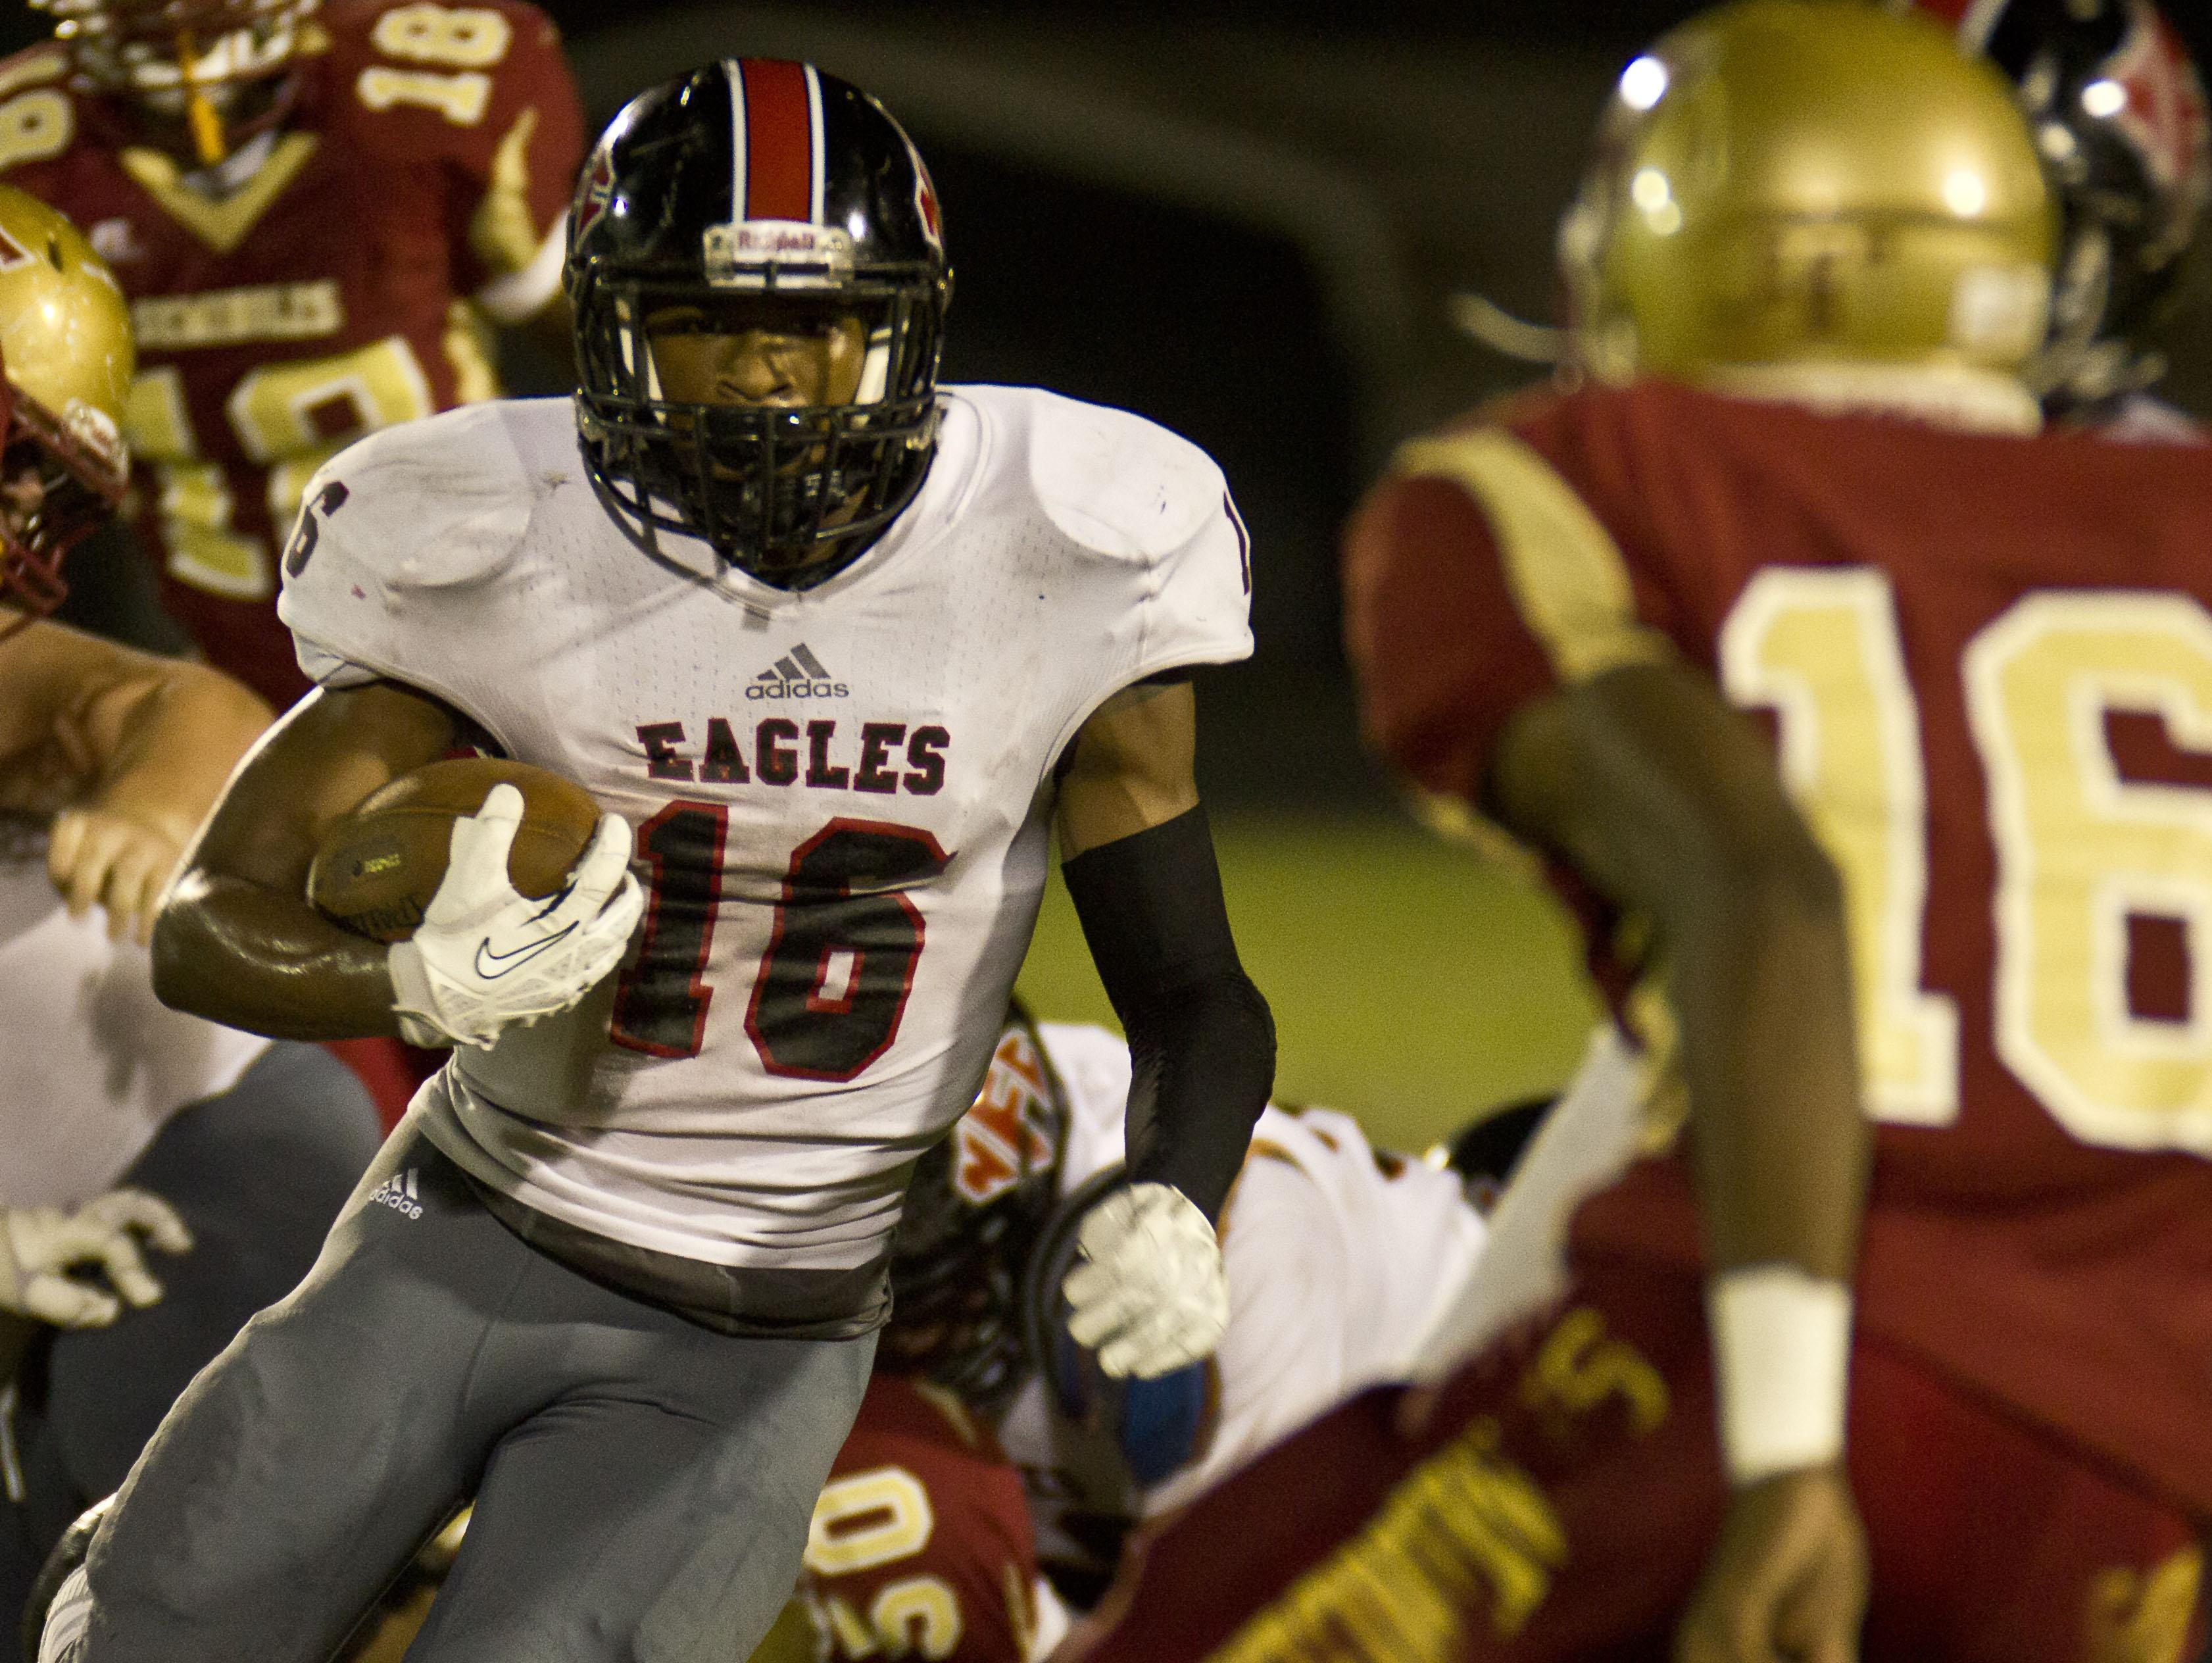 North Florida Christian running back Korey Charles runs for a gain against Florida High on Oct. 10, 2014.